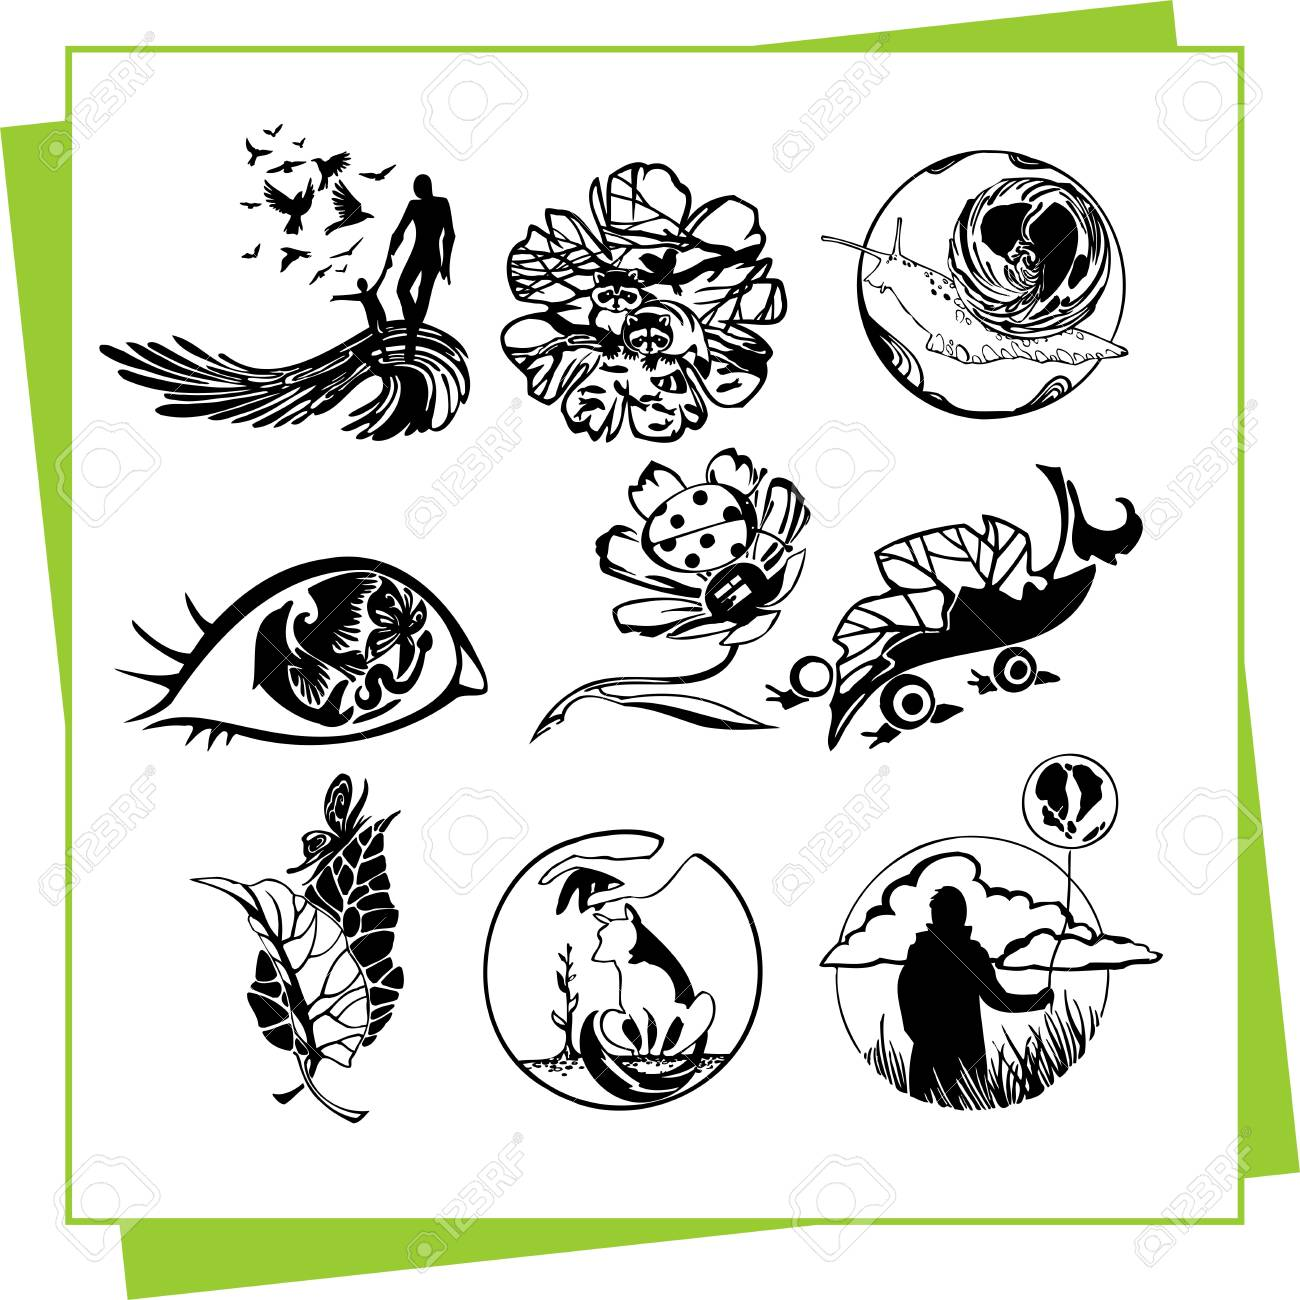 Eco Design Elements and Icons Stock Vector - 17011078